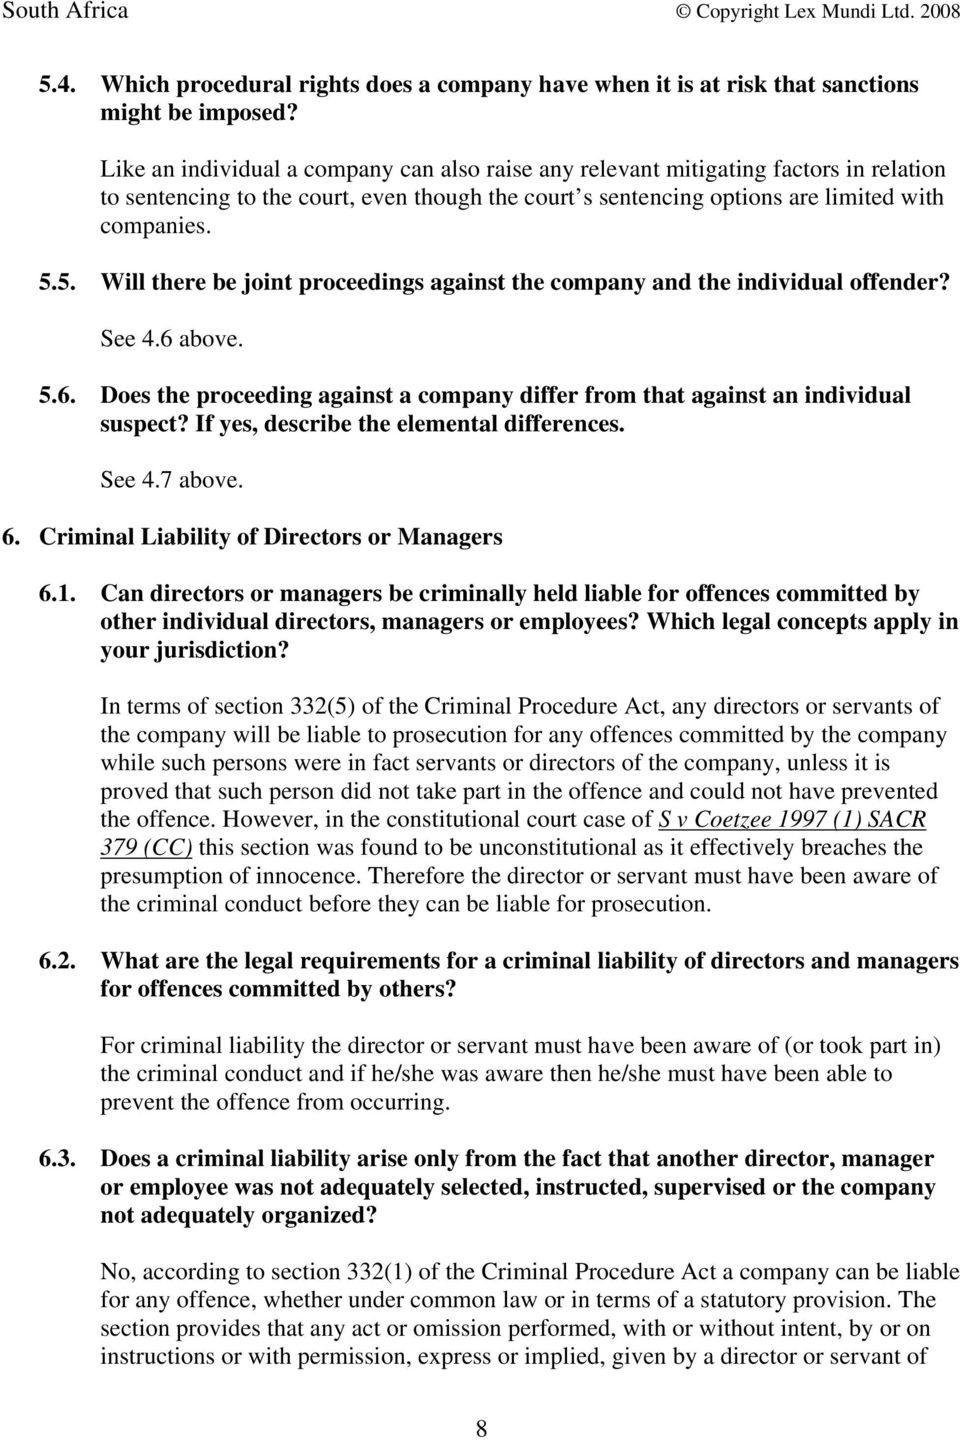 5. Will there be joint proceedings against the company and the individual offender? See 4.6 above. 5.6. Does the proceeding against a company differ from that against an individual suspect?